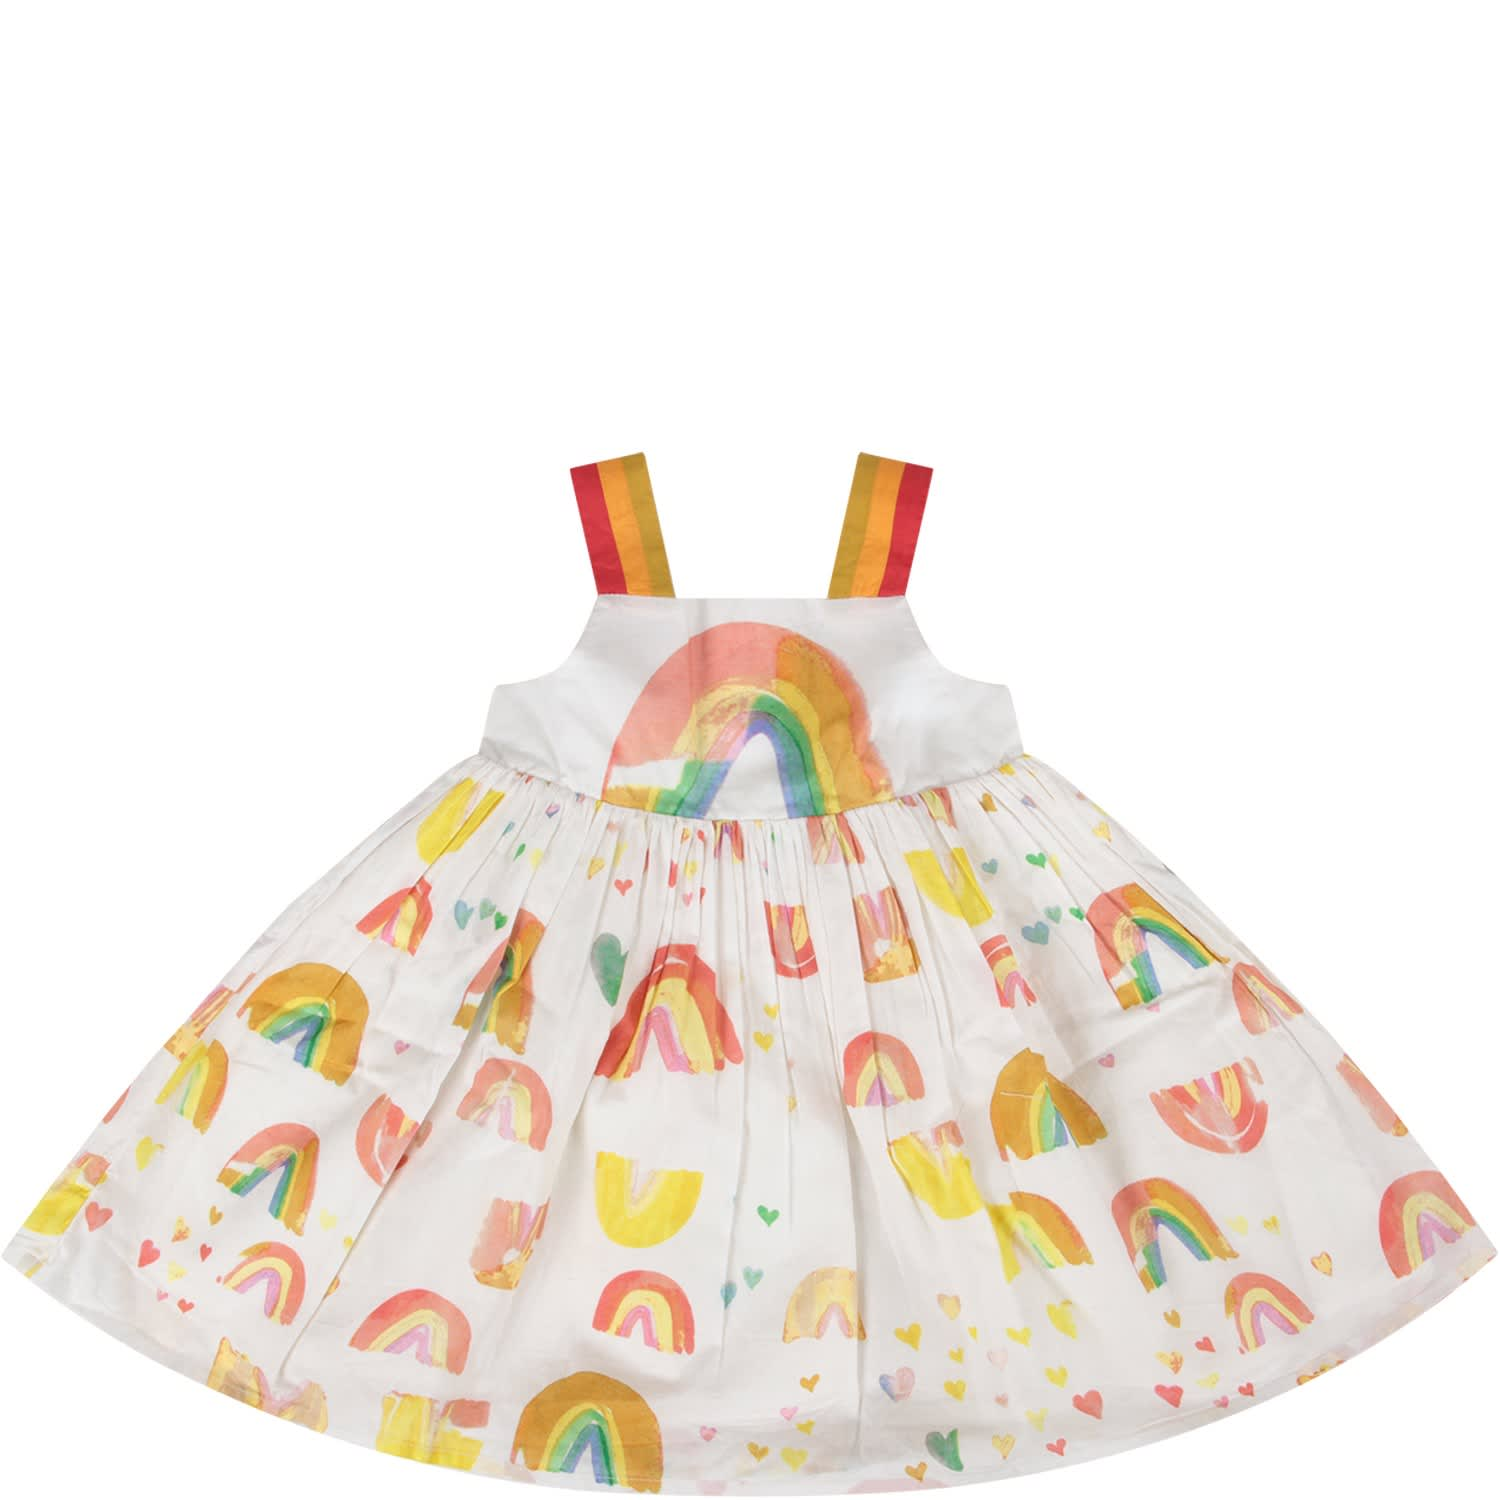 Buy Stella McCartney Kids White Dress With Rainbow And Hearts For Baby Girl online, shop Stella McCartney Kids with free shipping